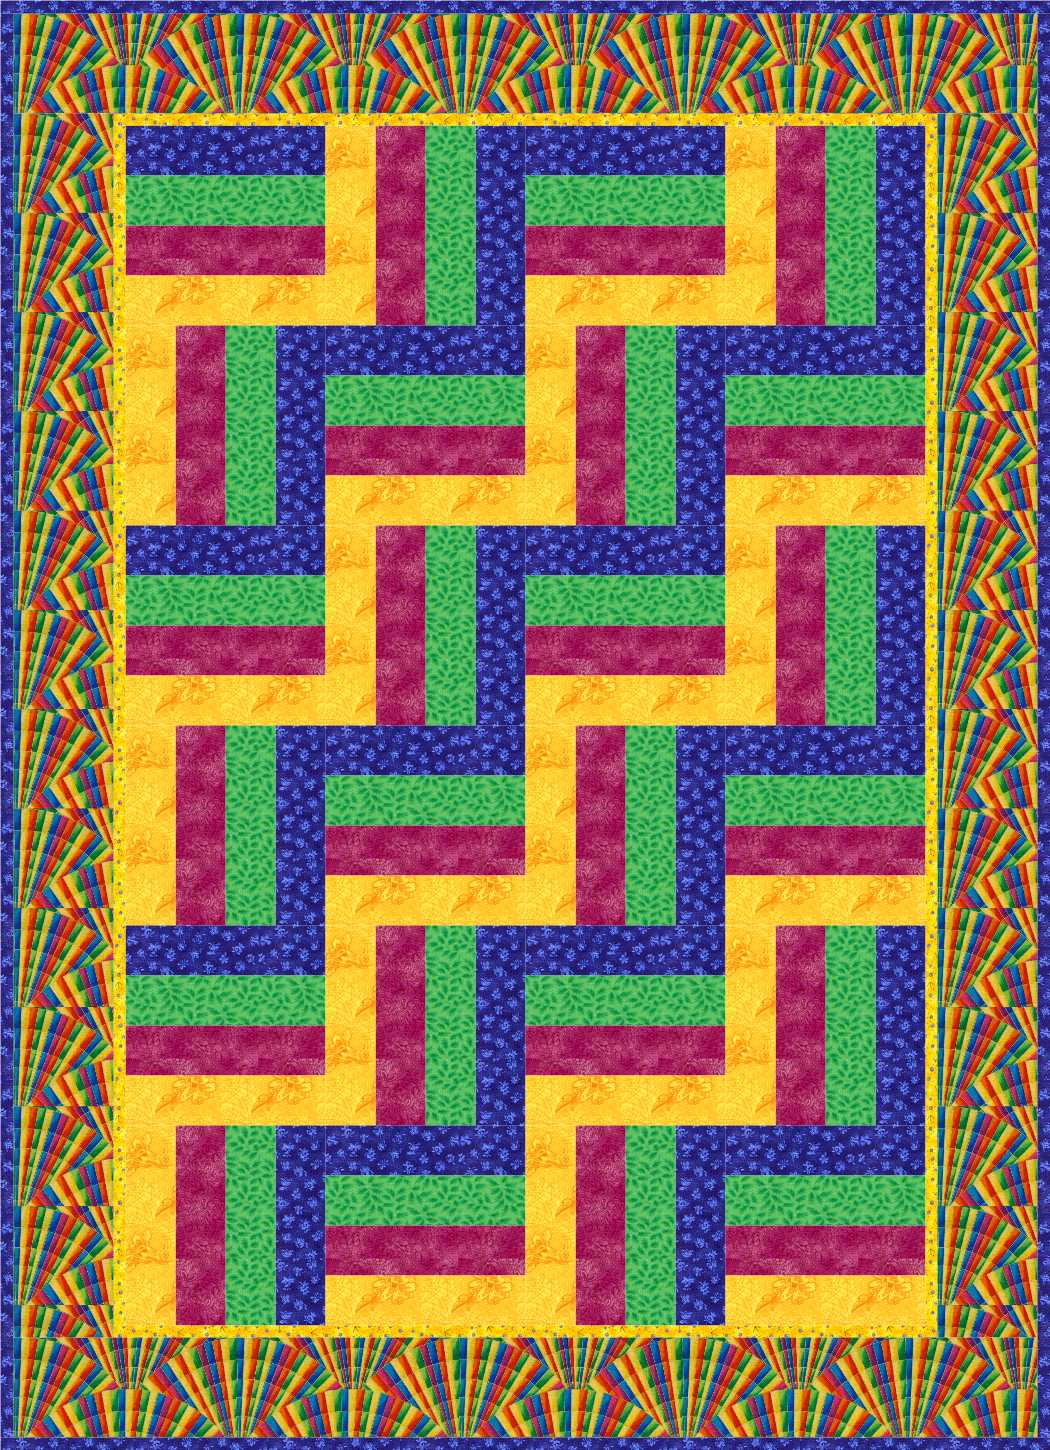 Geometric Shapes In Quilts Squares And Rectangles Kathy